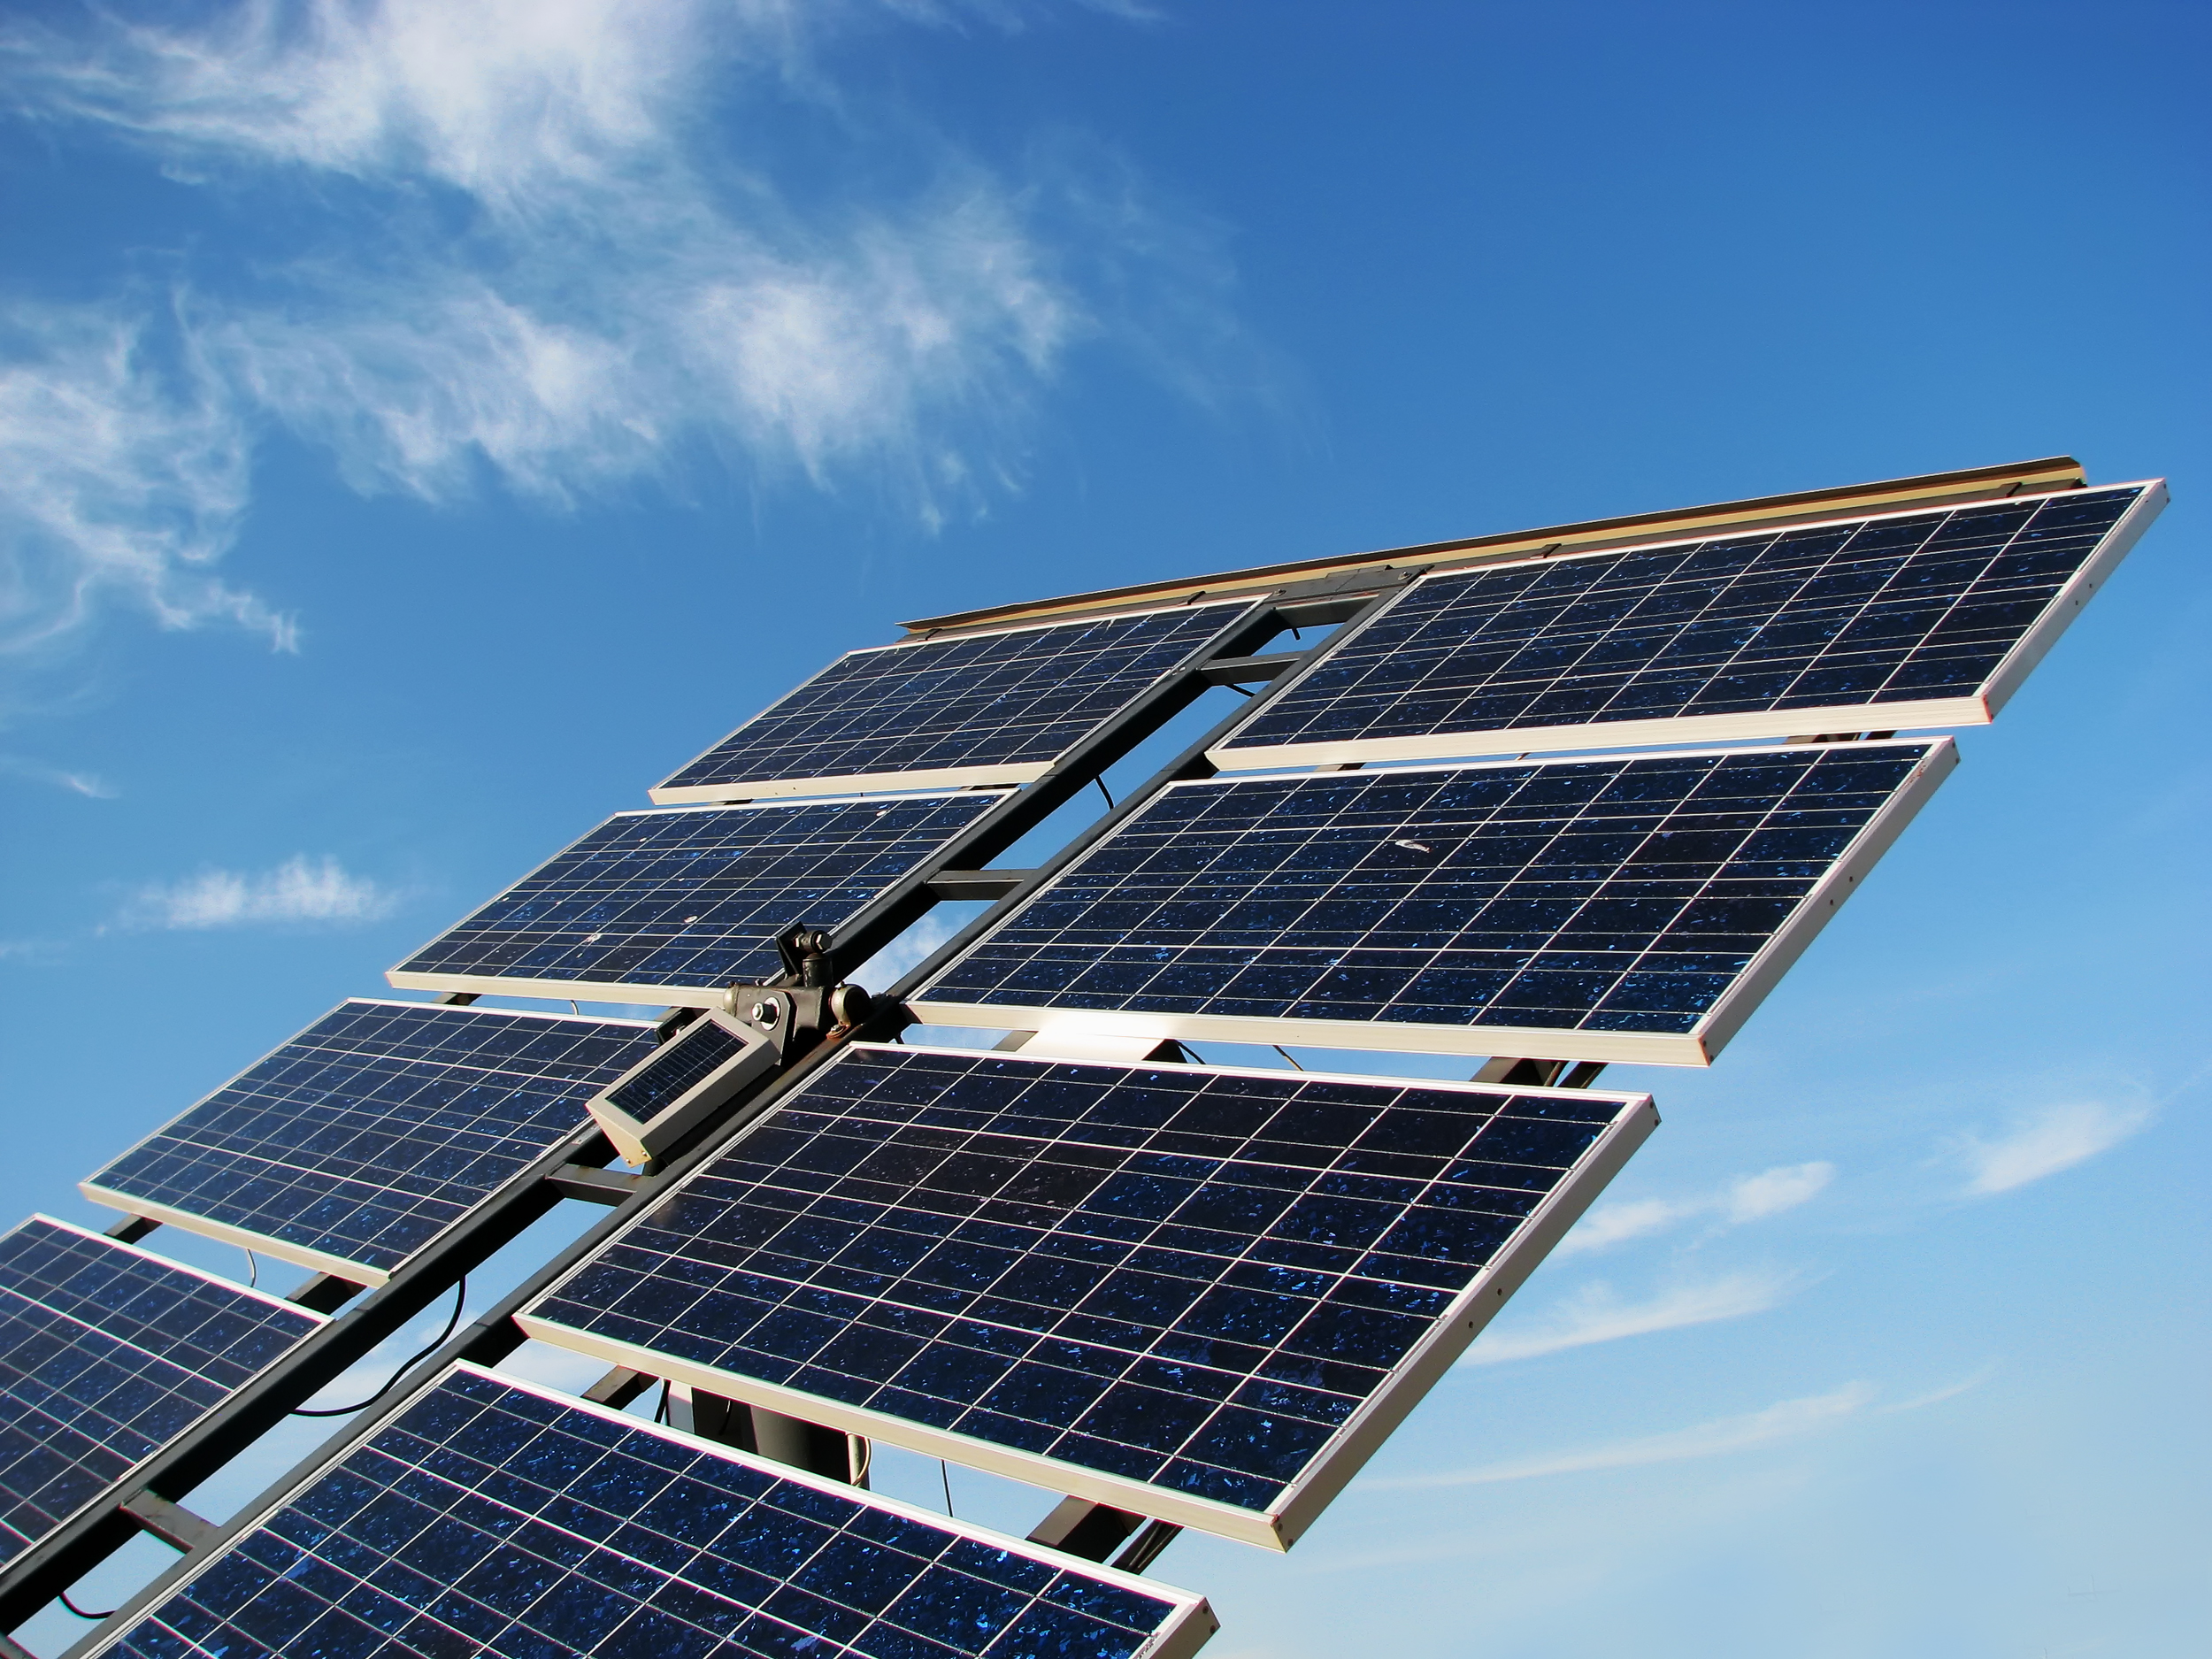 Energy Freehelpinghandss Blog Solar Panel With Corrugated Thin Film Cells On Wiring Panels In